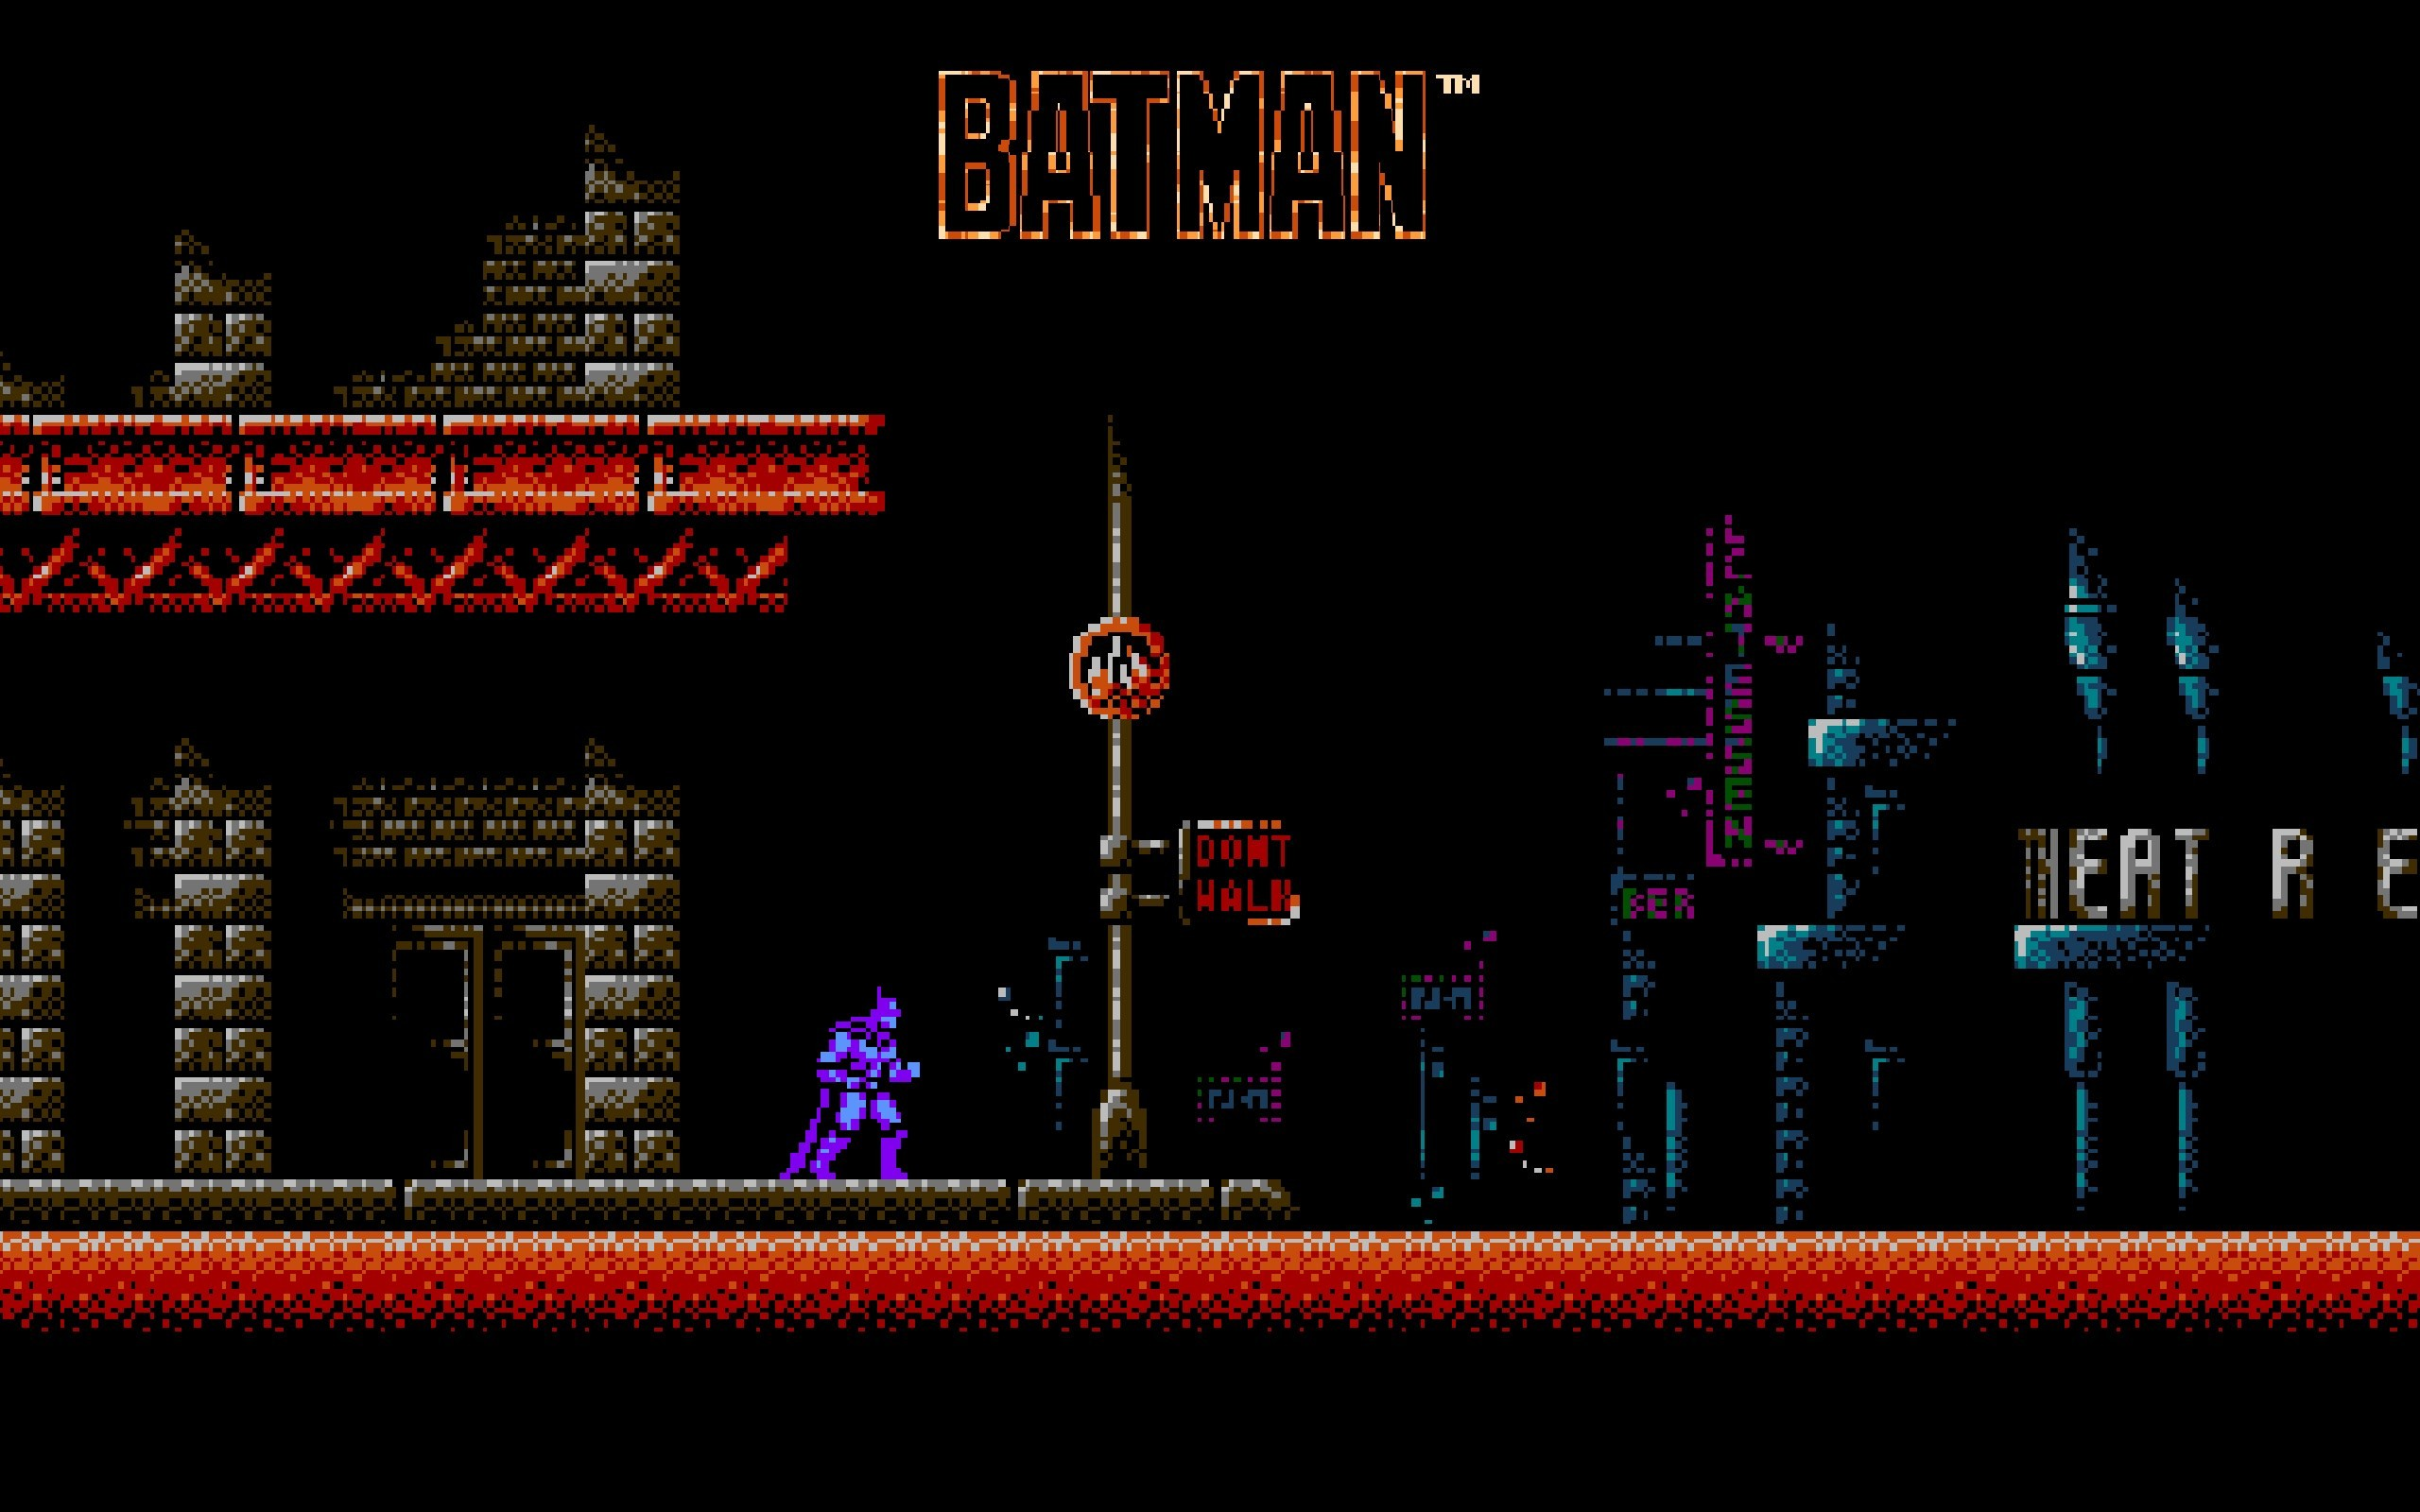 batman picture – Full HD Wallpapers, Photos by Ivy Fletcher (2017-03-